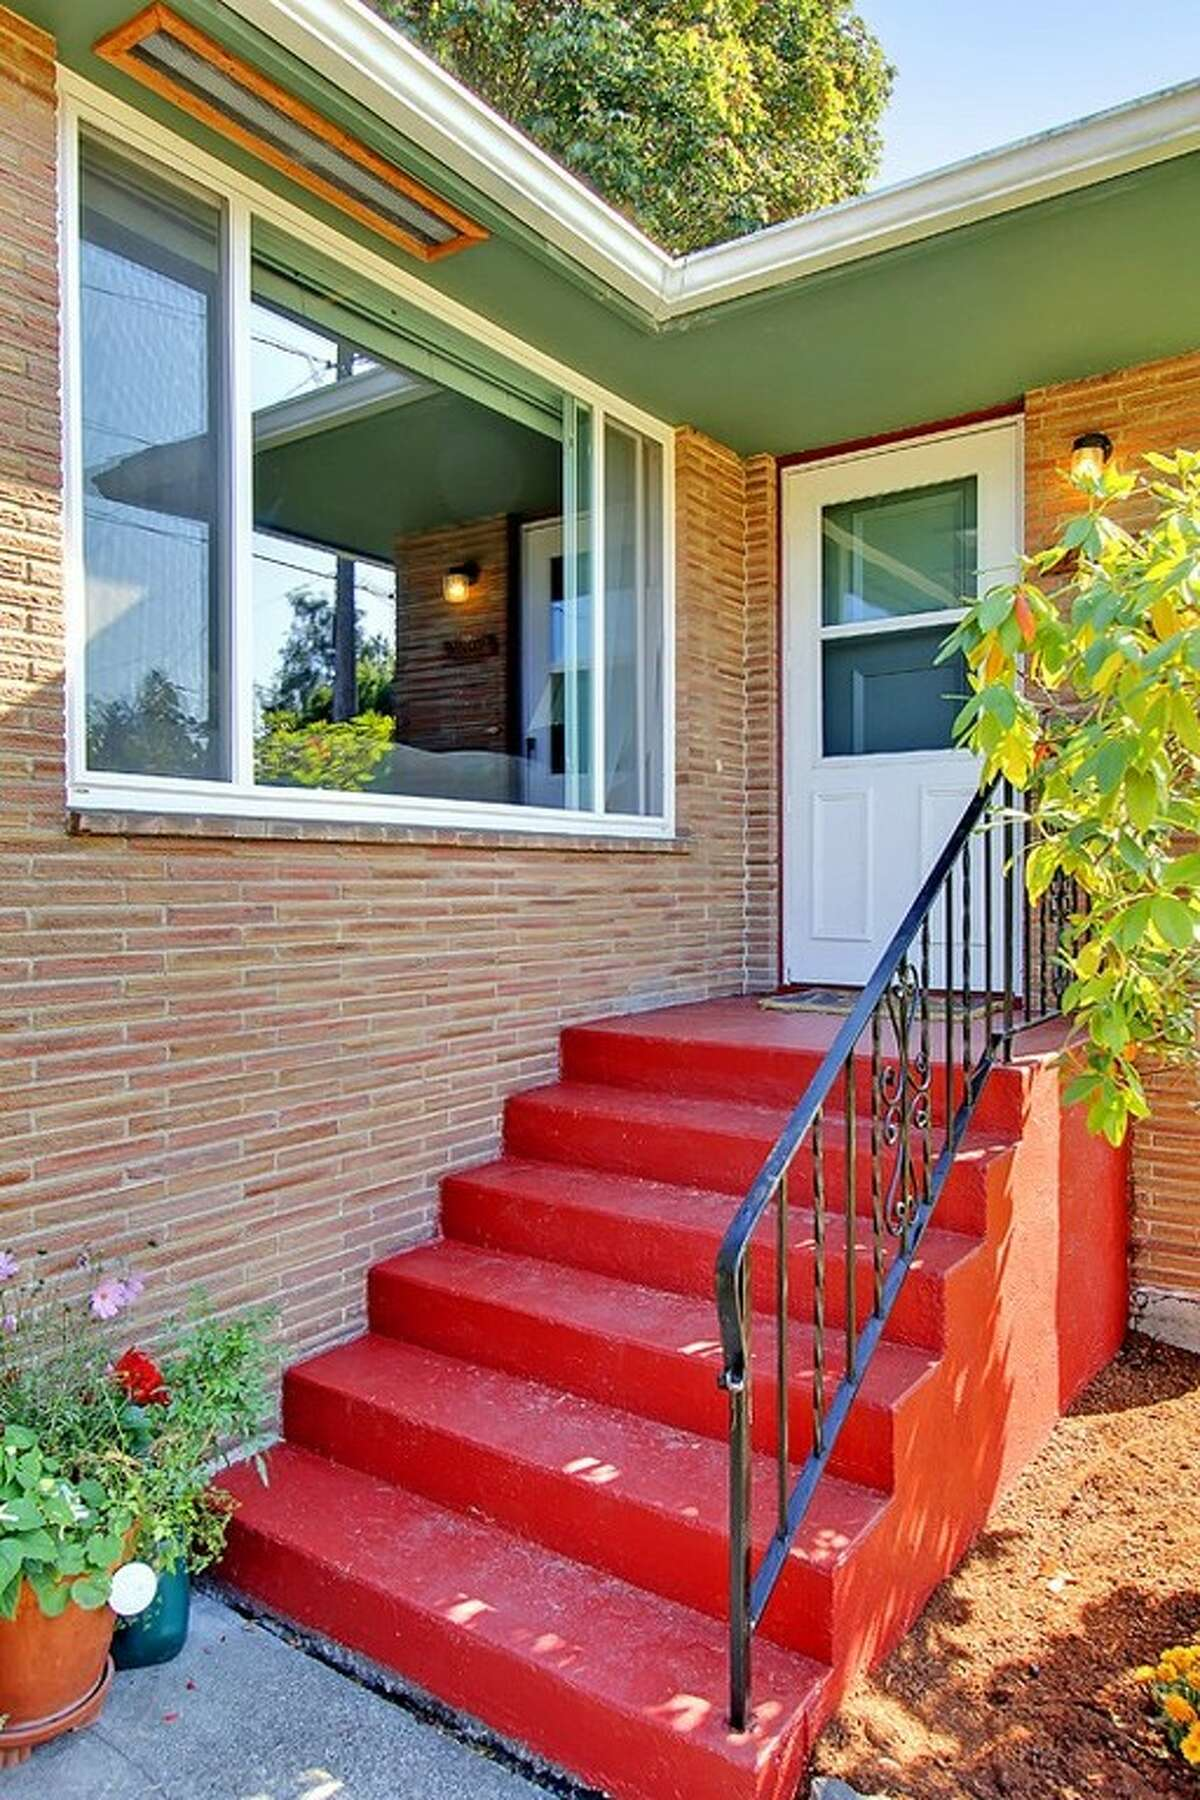 Entry of 7024 25 Ave. N.E. The 2,080-square-foot mid-century-modern brick house, built in 1954, has three bedrooms, two bathrooms and a downstairs rec room with a fireplace on a 5,100-square-foot lot. It's listed for $435,000.